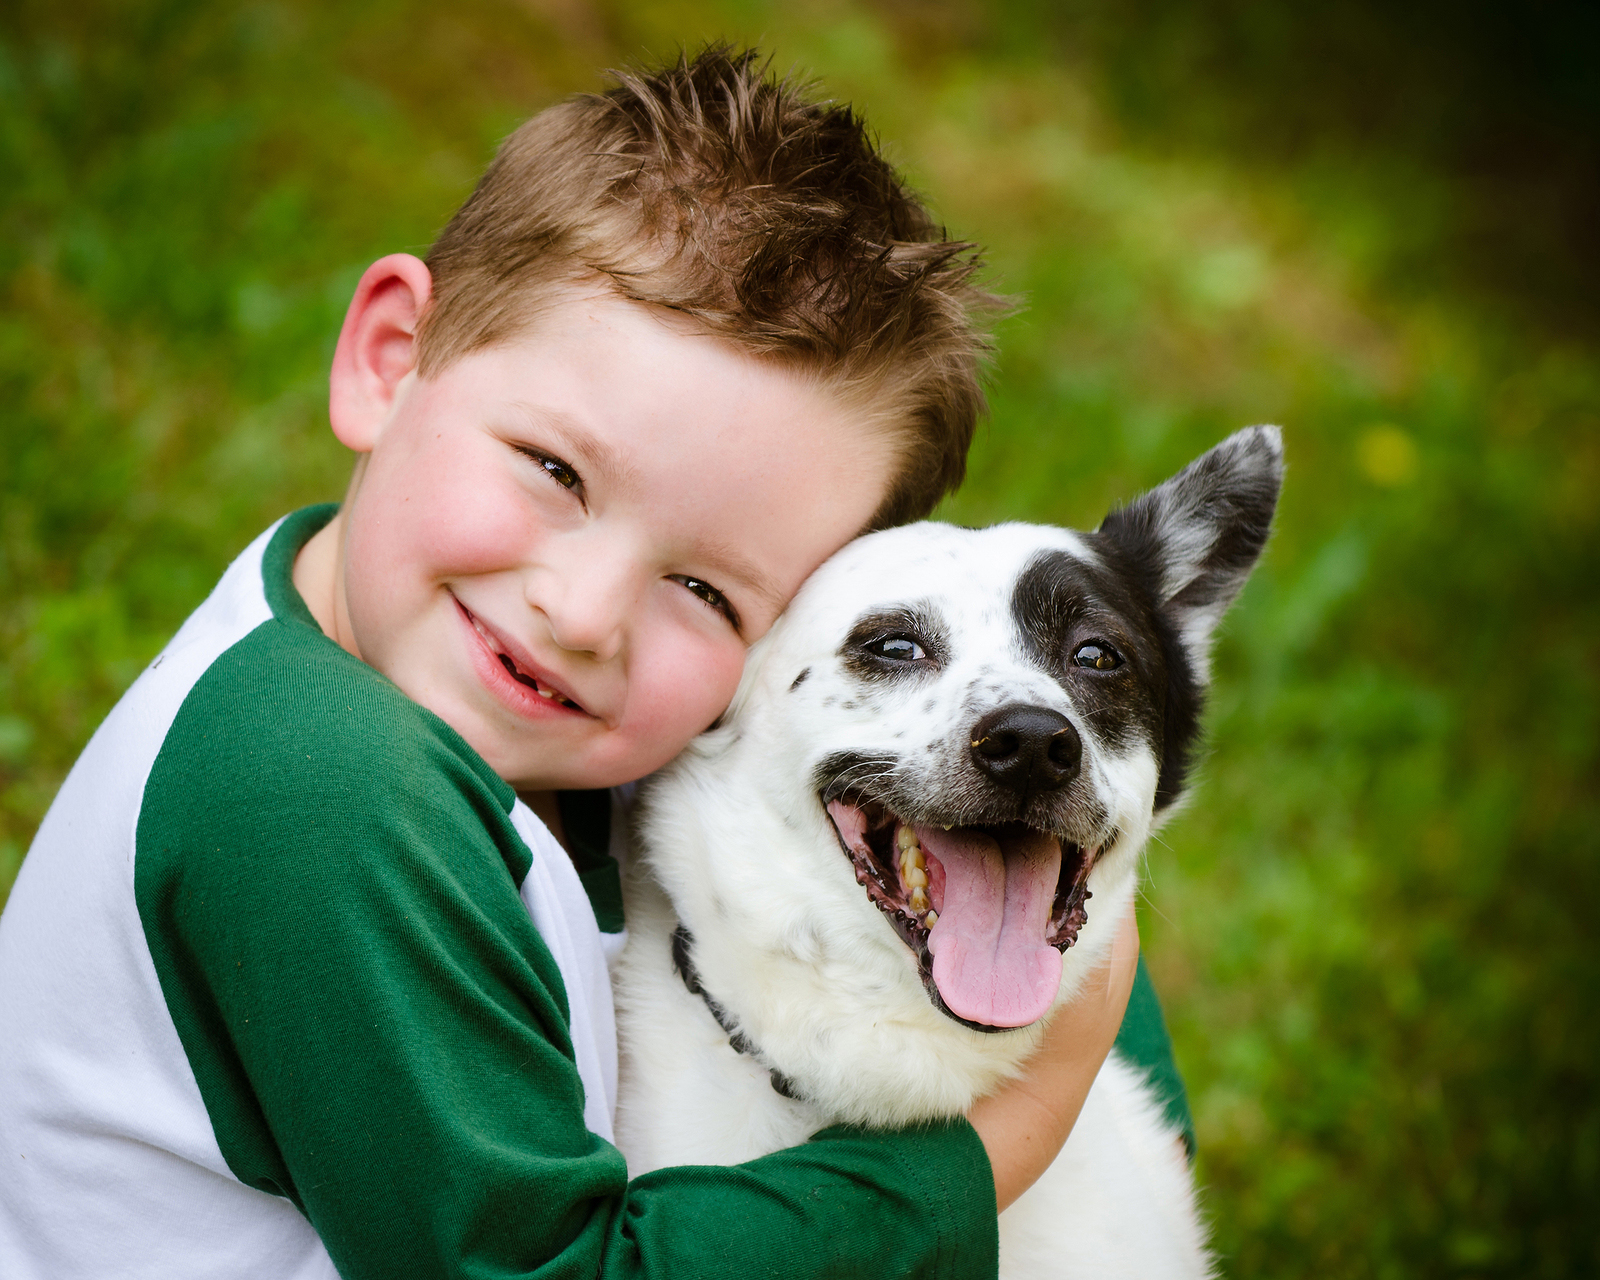 little kid and dog